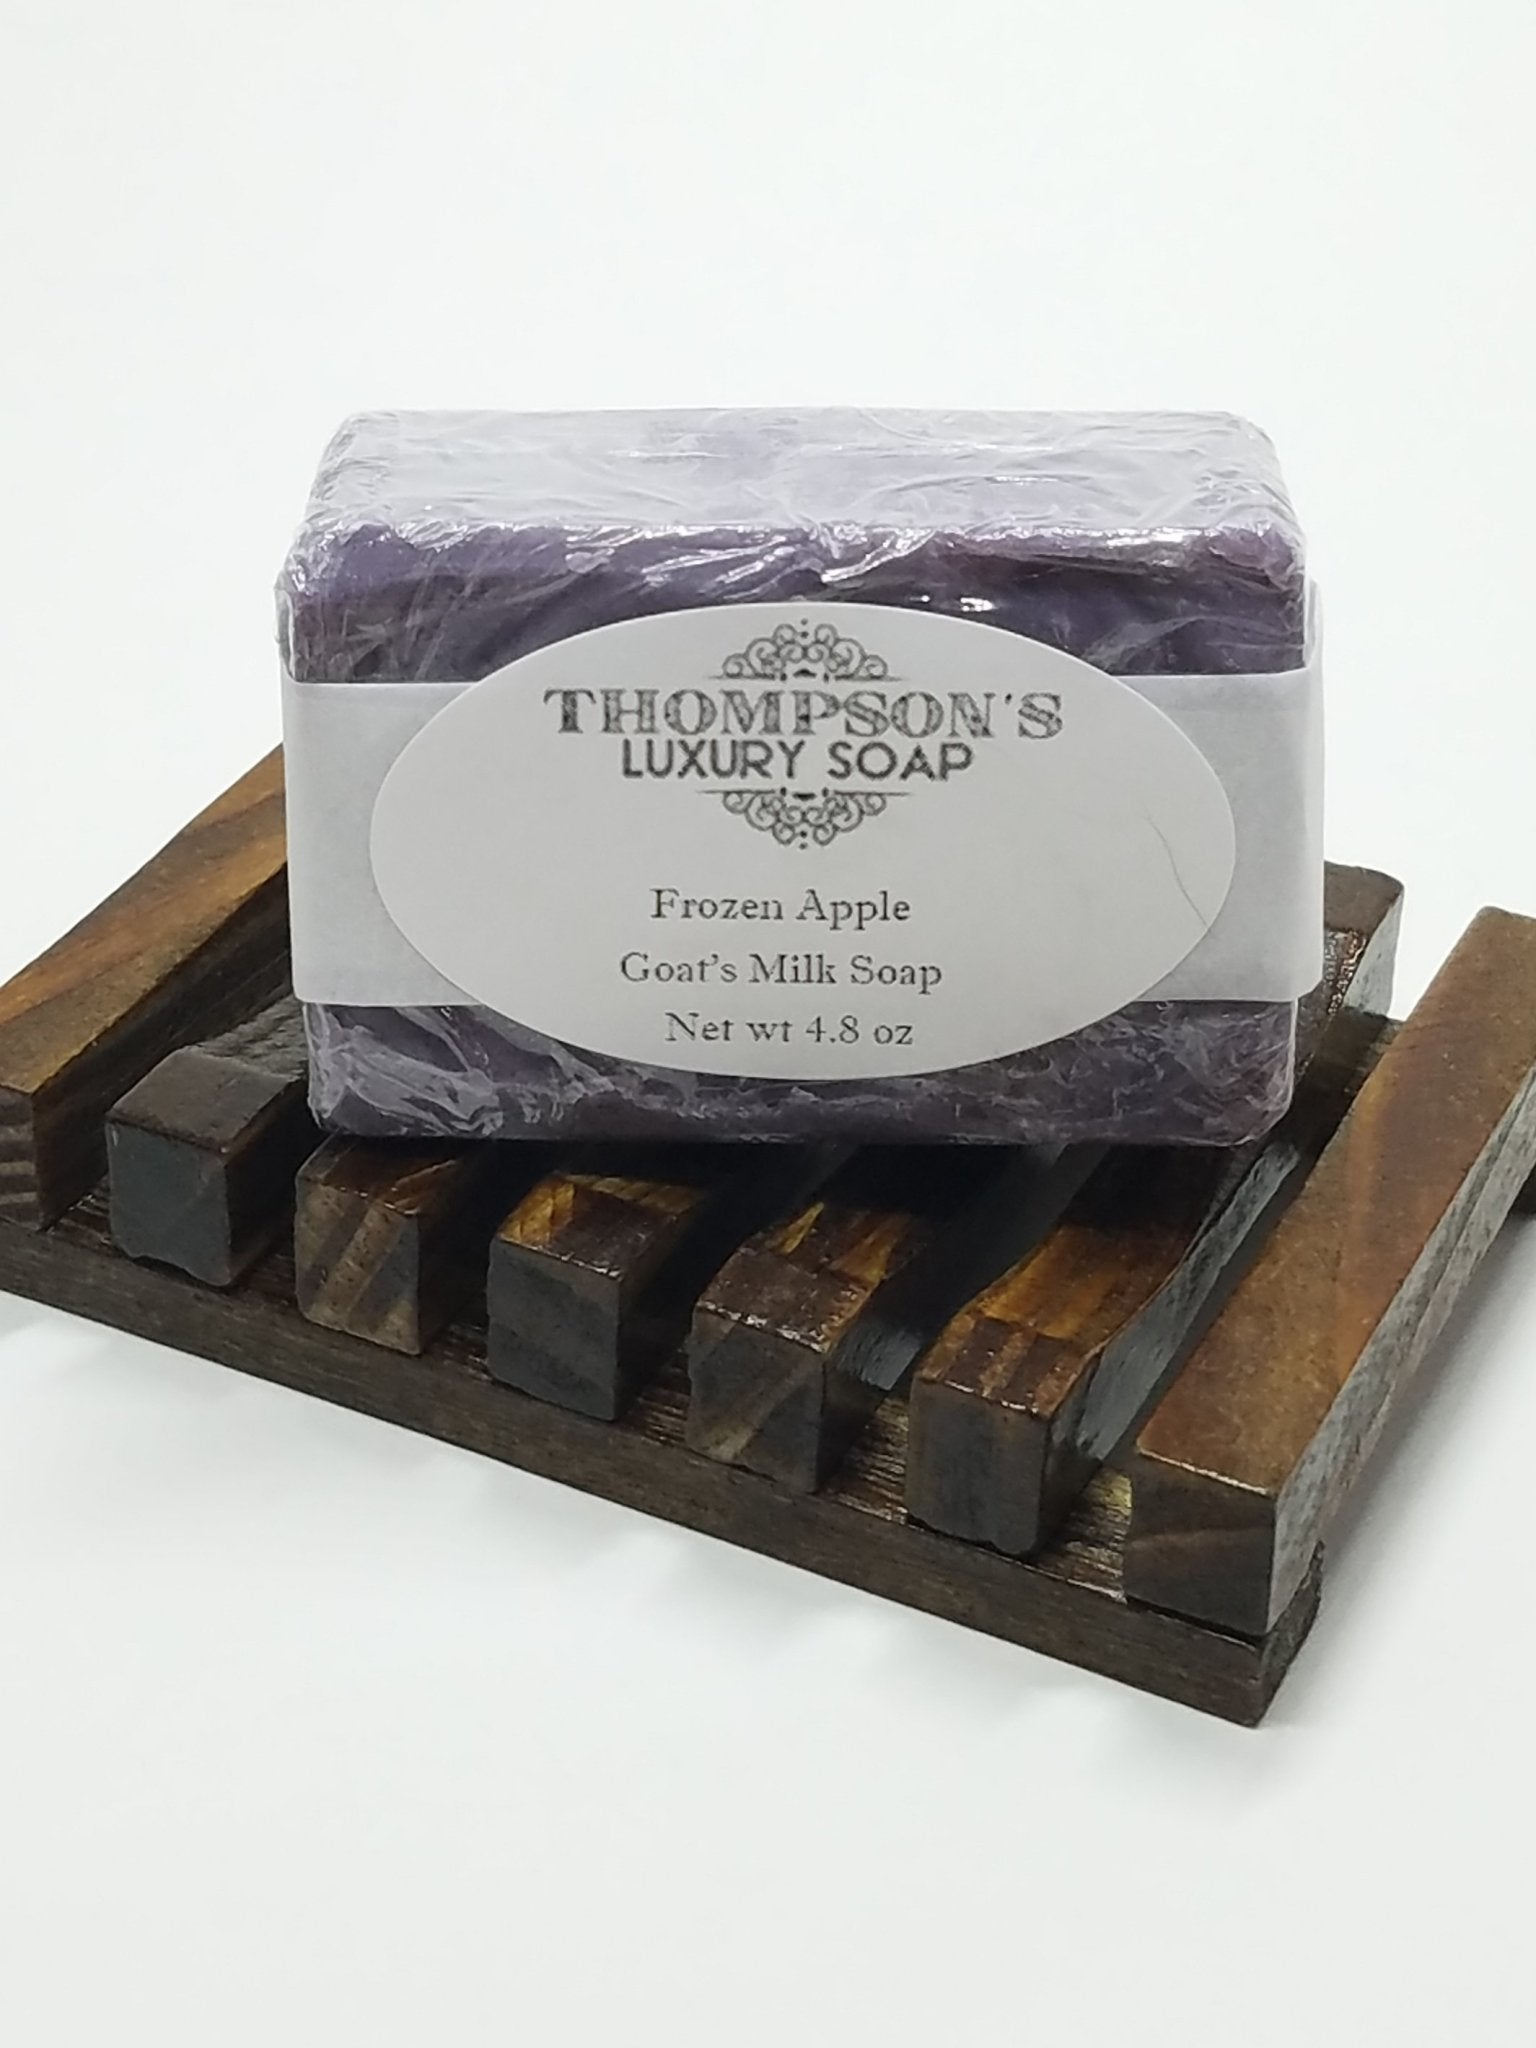 Frozen Apple All Natural Goat's Milk Soap Bar with Essential Oils - Thompson's Luxury Soap